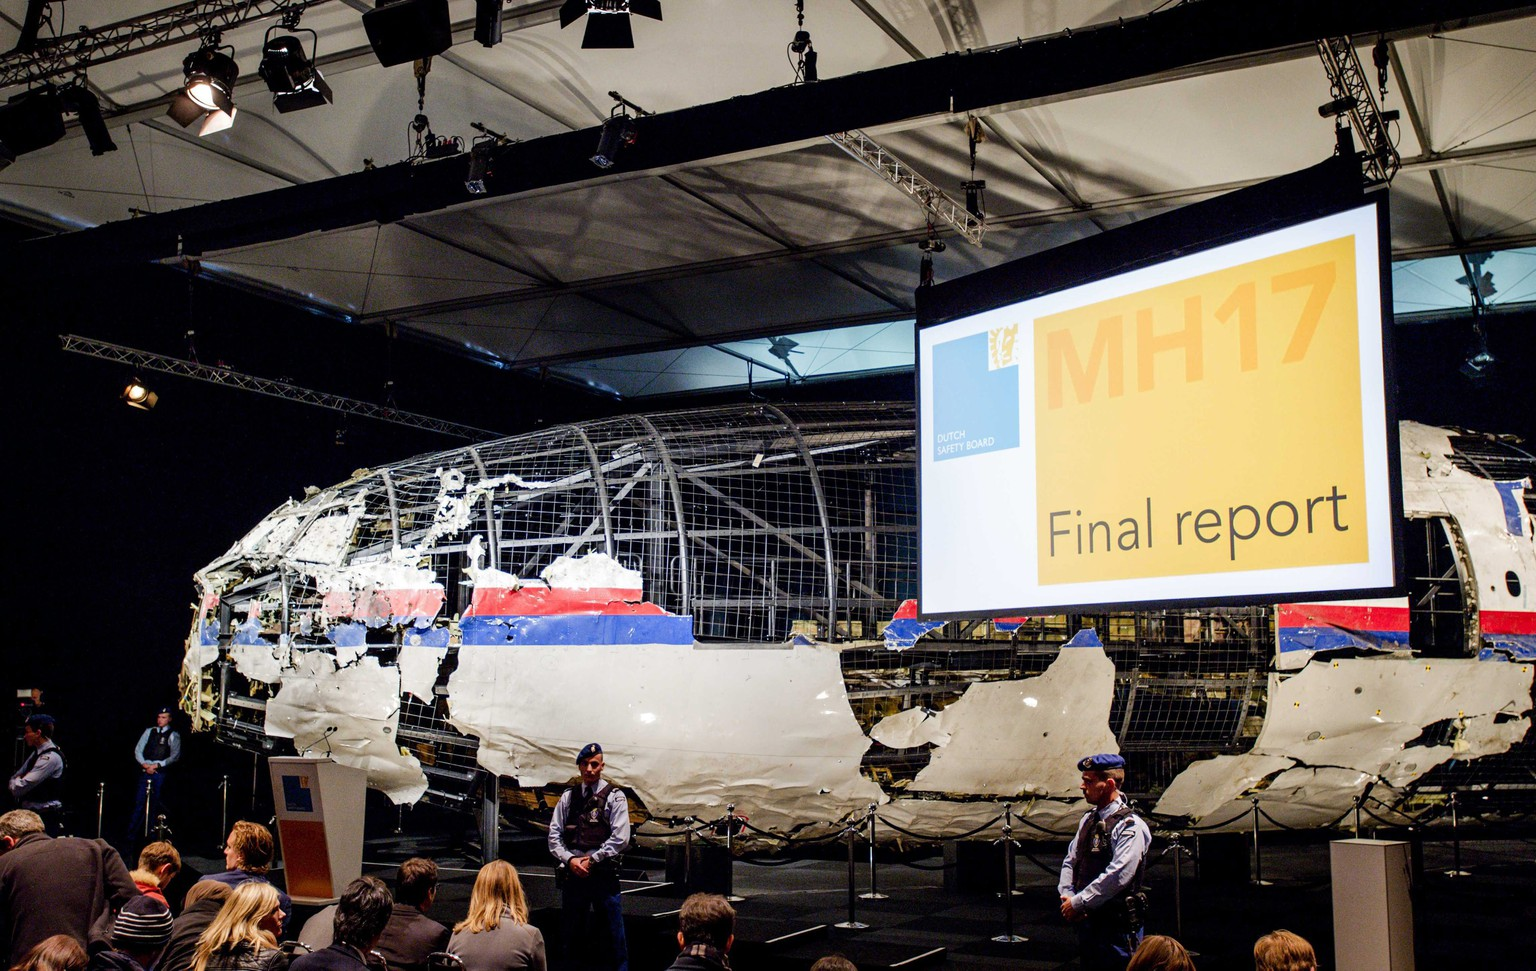 epa04975938 The rebuilt fuselage of Malaysia Airlines flight MH17 during a press conference to present the report findings of the Dutch Safety Board in Gilze Rijen, The Netherlands, 13 October 2015. The Dutch Safety Board was to present its final report into the downing of Malaysia Airlines flight MH17 over eastern Ukraine last year. MH17 was on its way from Amsterdam to Kuala Lumpur when it went down in rebel-controlled territory on 17 July 2014, killing all 298 people on board.  EPA/ROBIN VAN LONKHUIJSEN